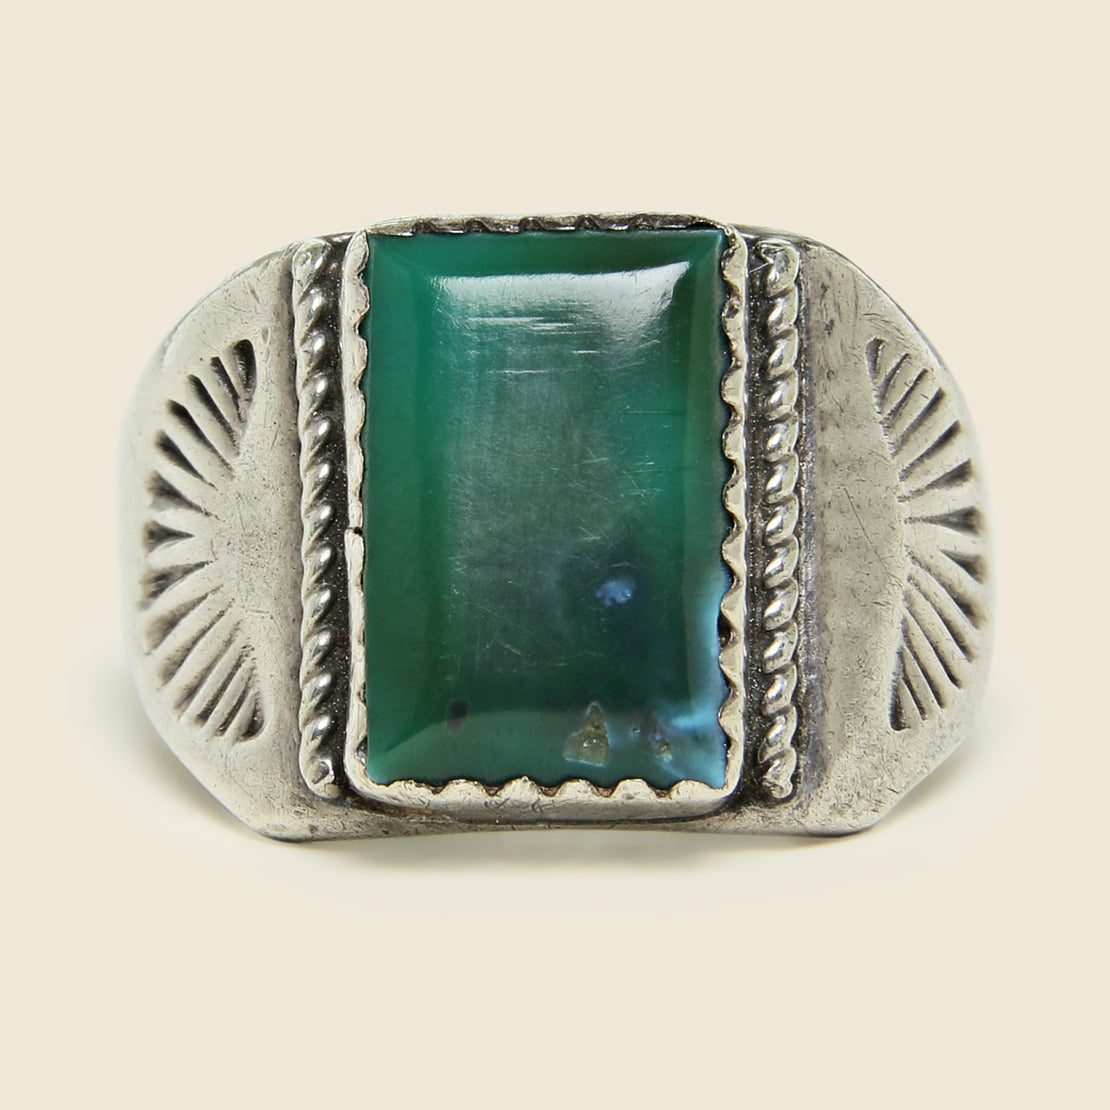 Green Turquoise Silver Ring - Vintage - STAG Provisions - One & Done - Jewelry